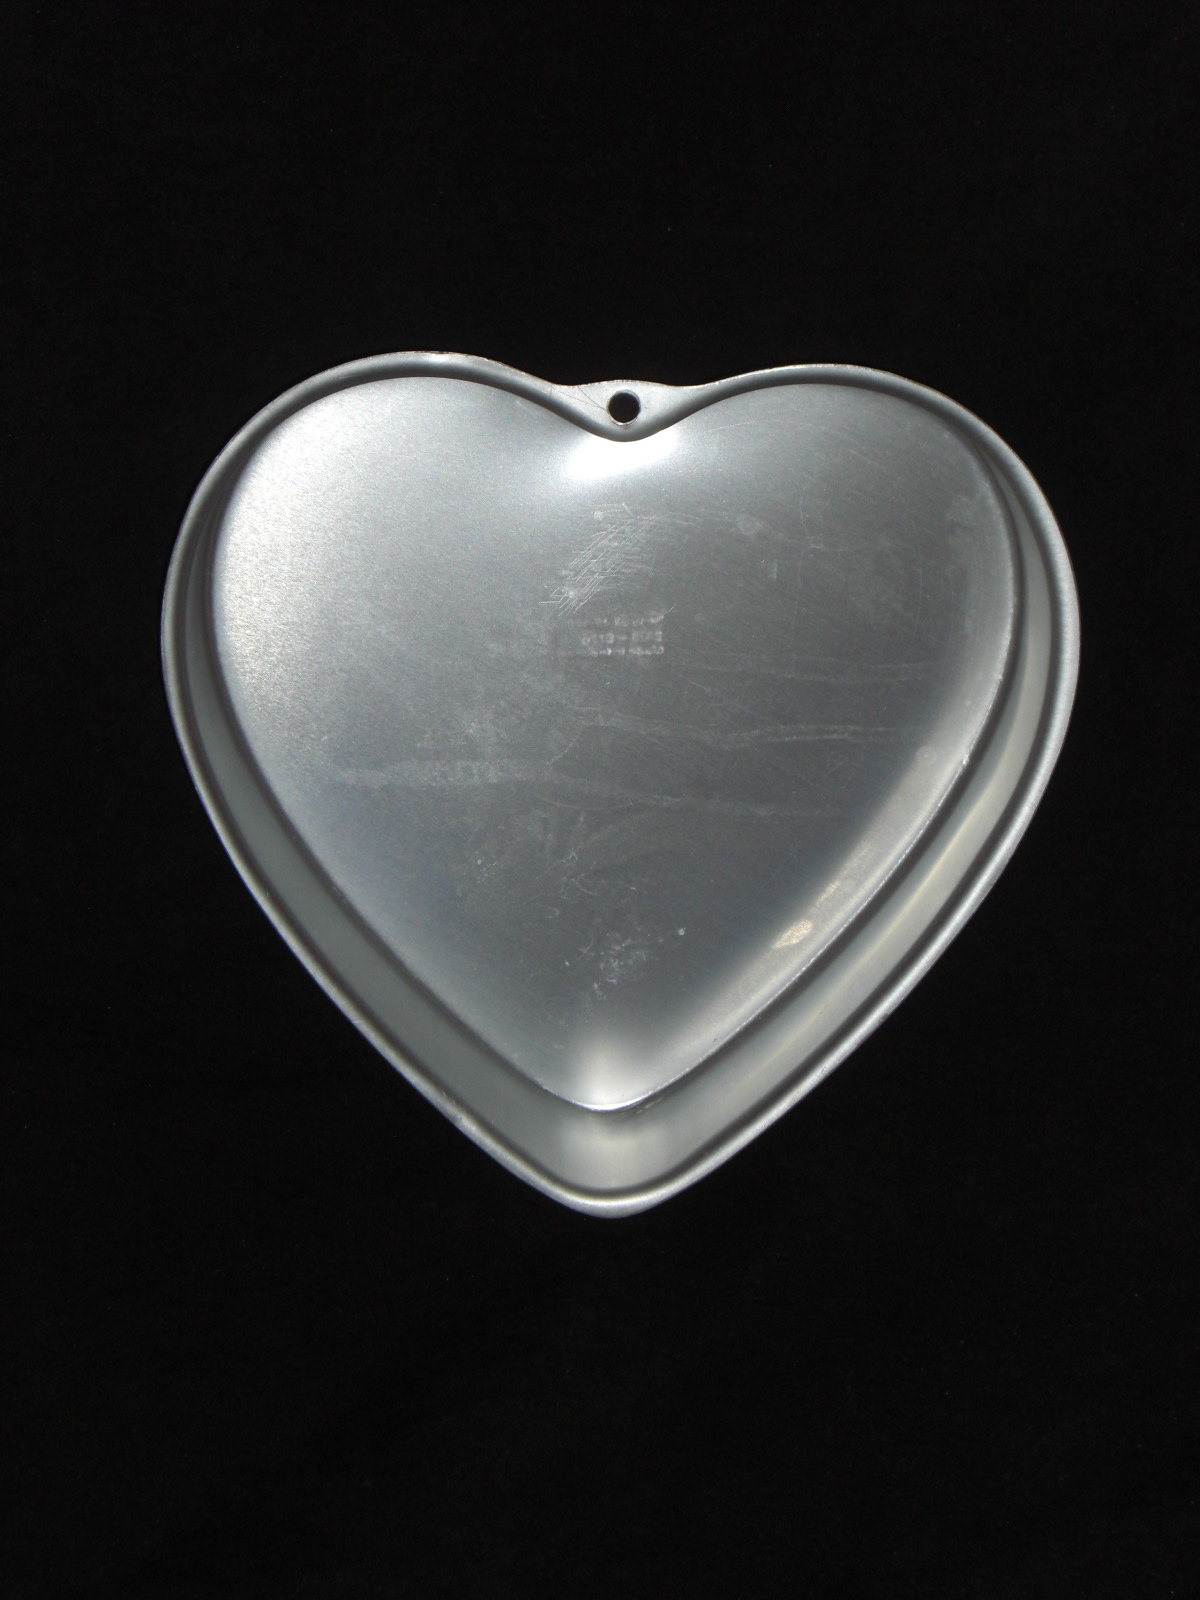 Primary image for Wilton Cake Pan HEART 2105-5176